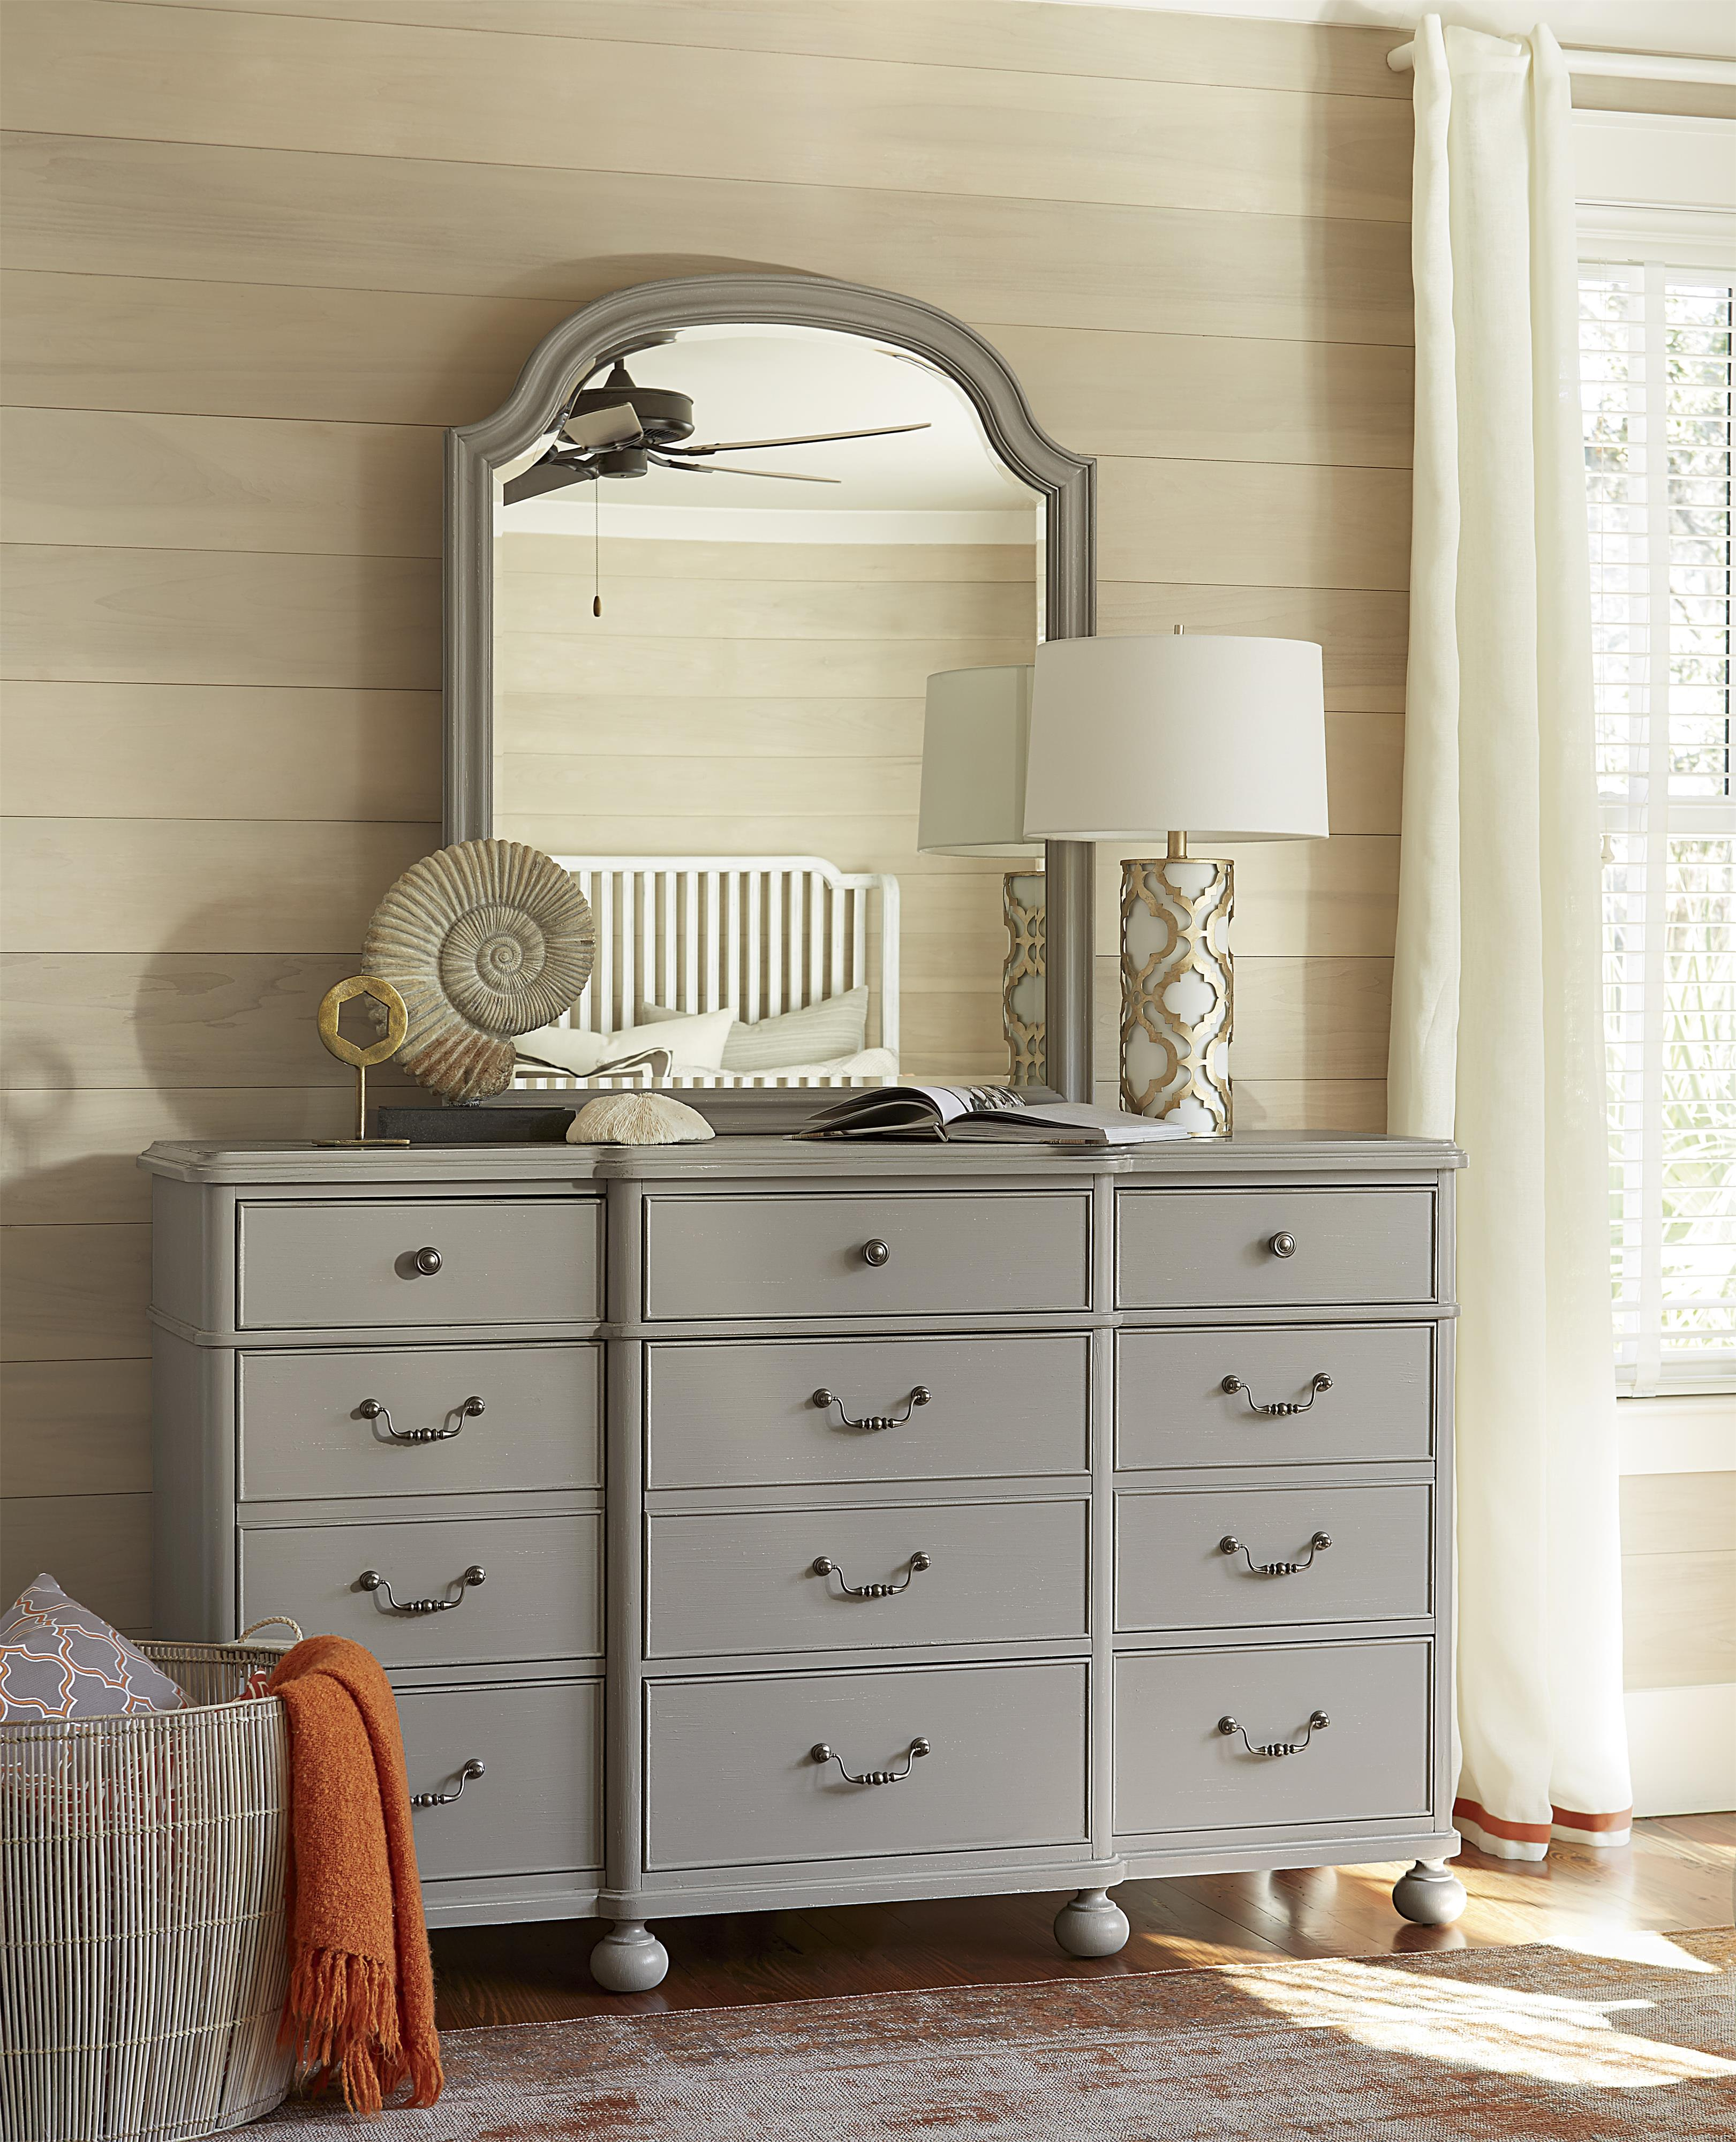 Paula Deen By Universal Dogwood Mirror With Arched Top Jacksonville Furniture Mart Dresser